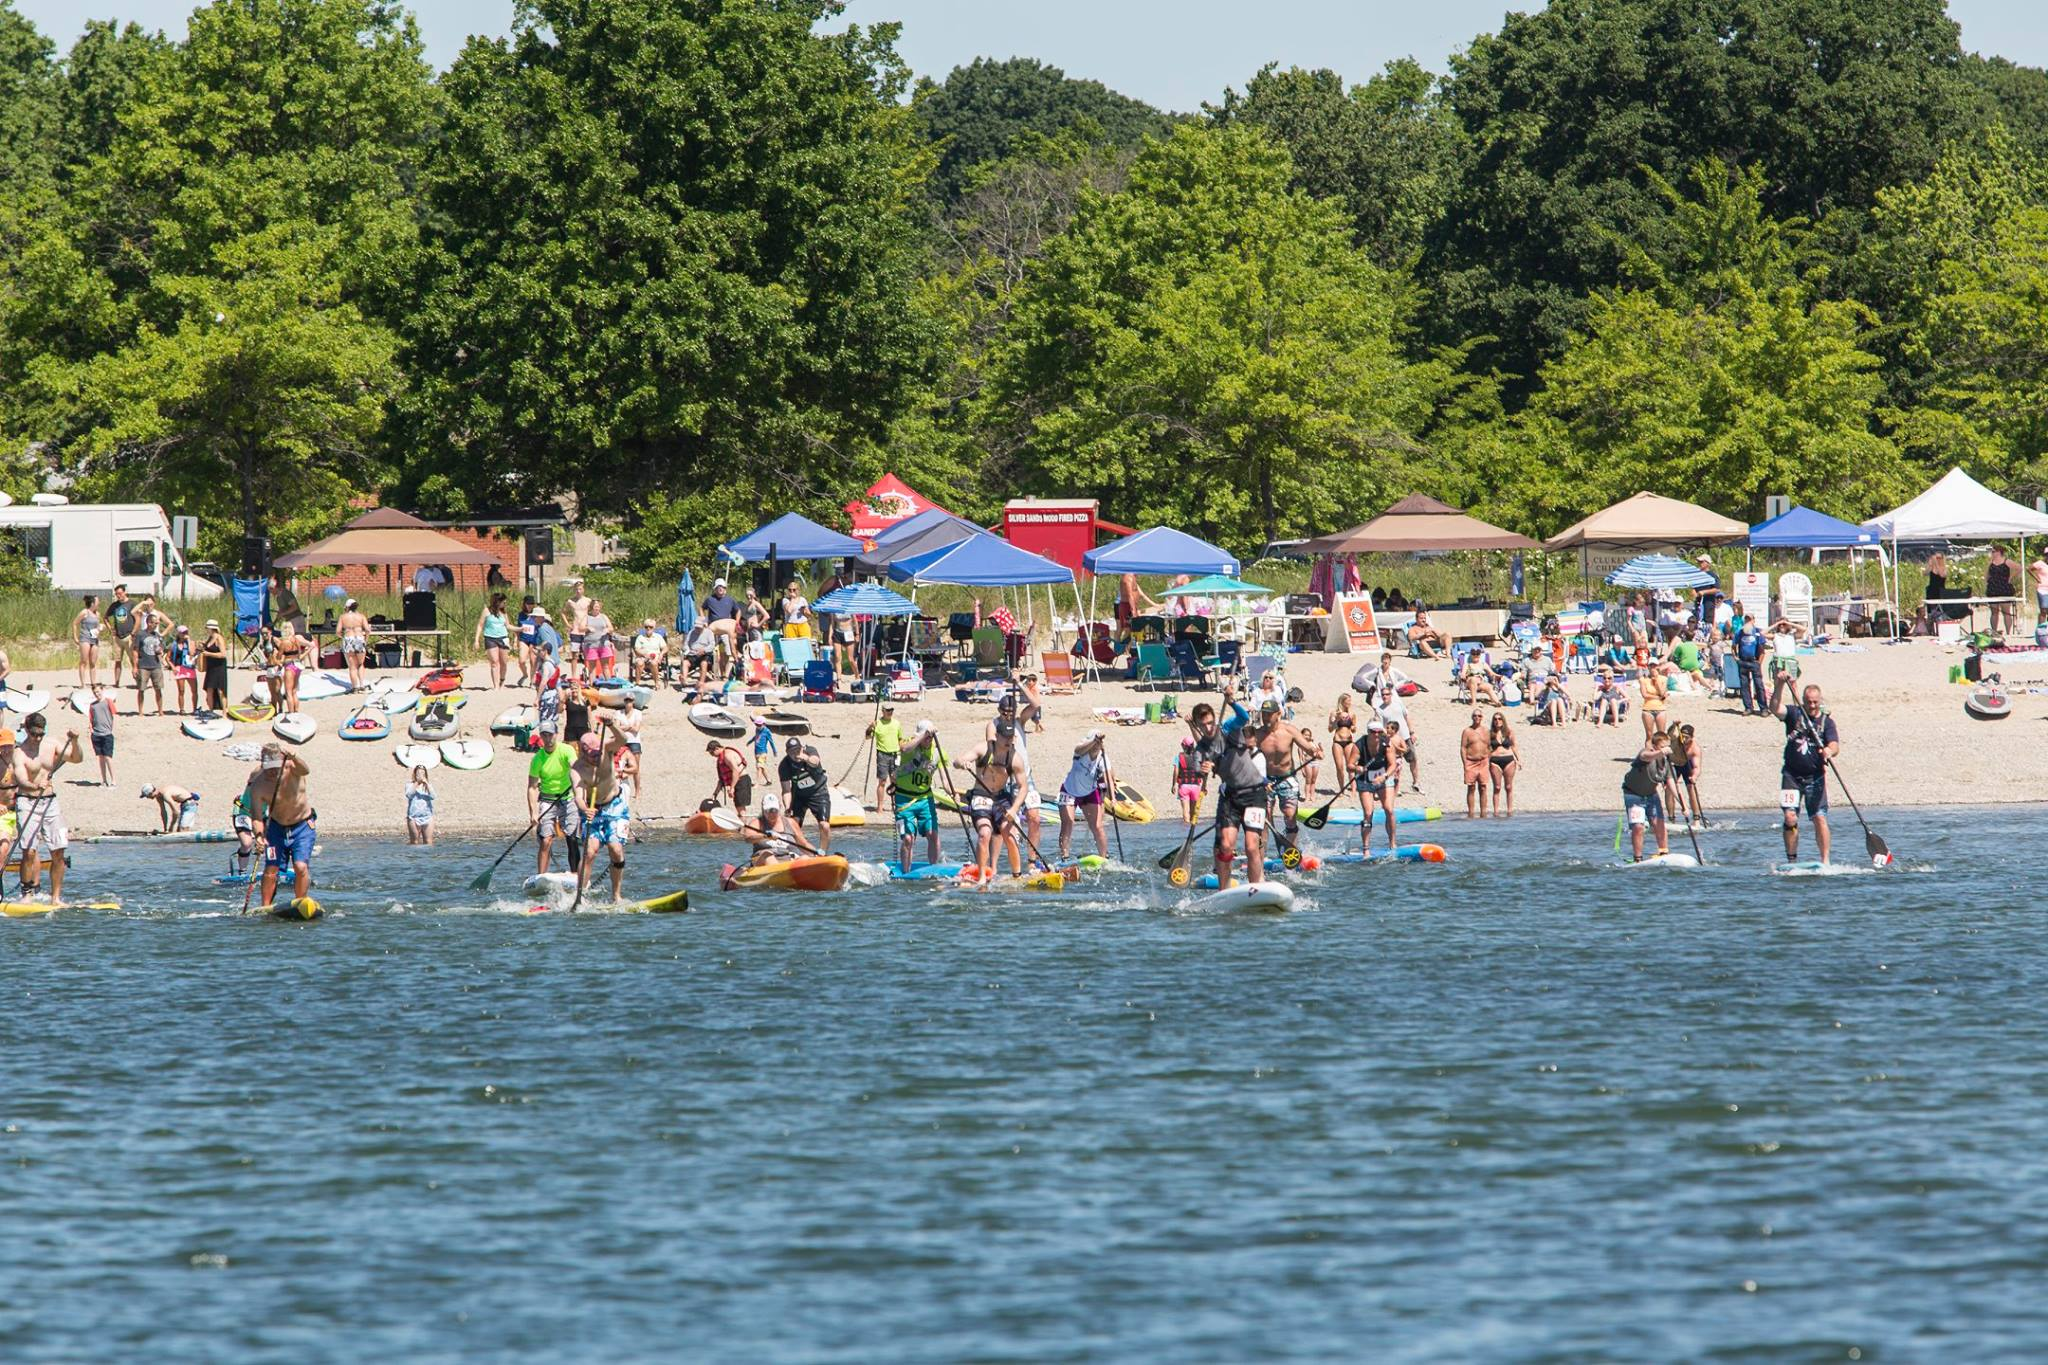 Don't Miss the 5th Annual Surfrider Foundation Charles Island SUP Cup on Saturday, June 15!